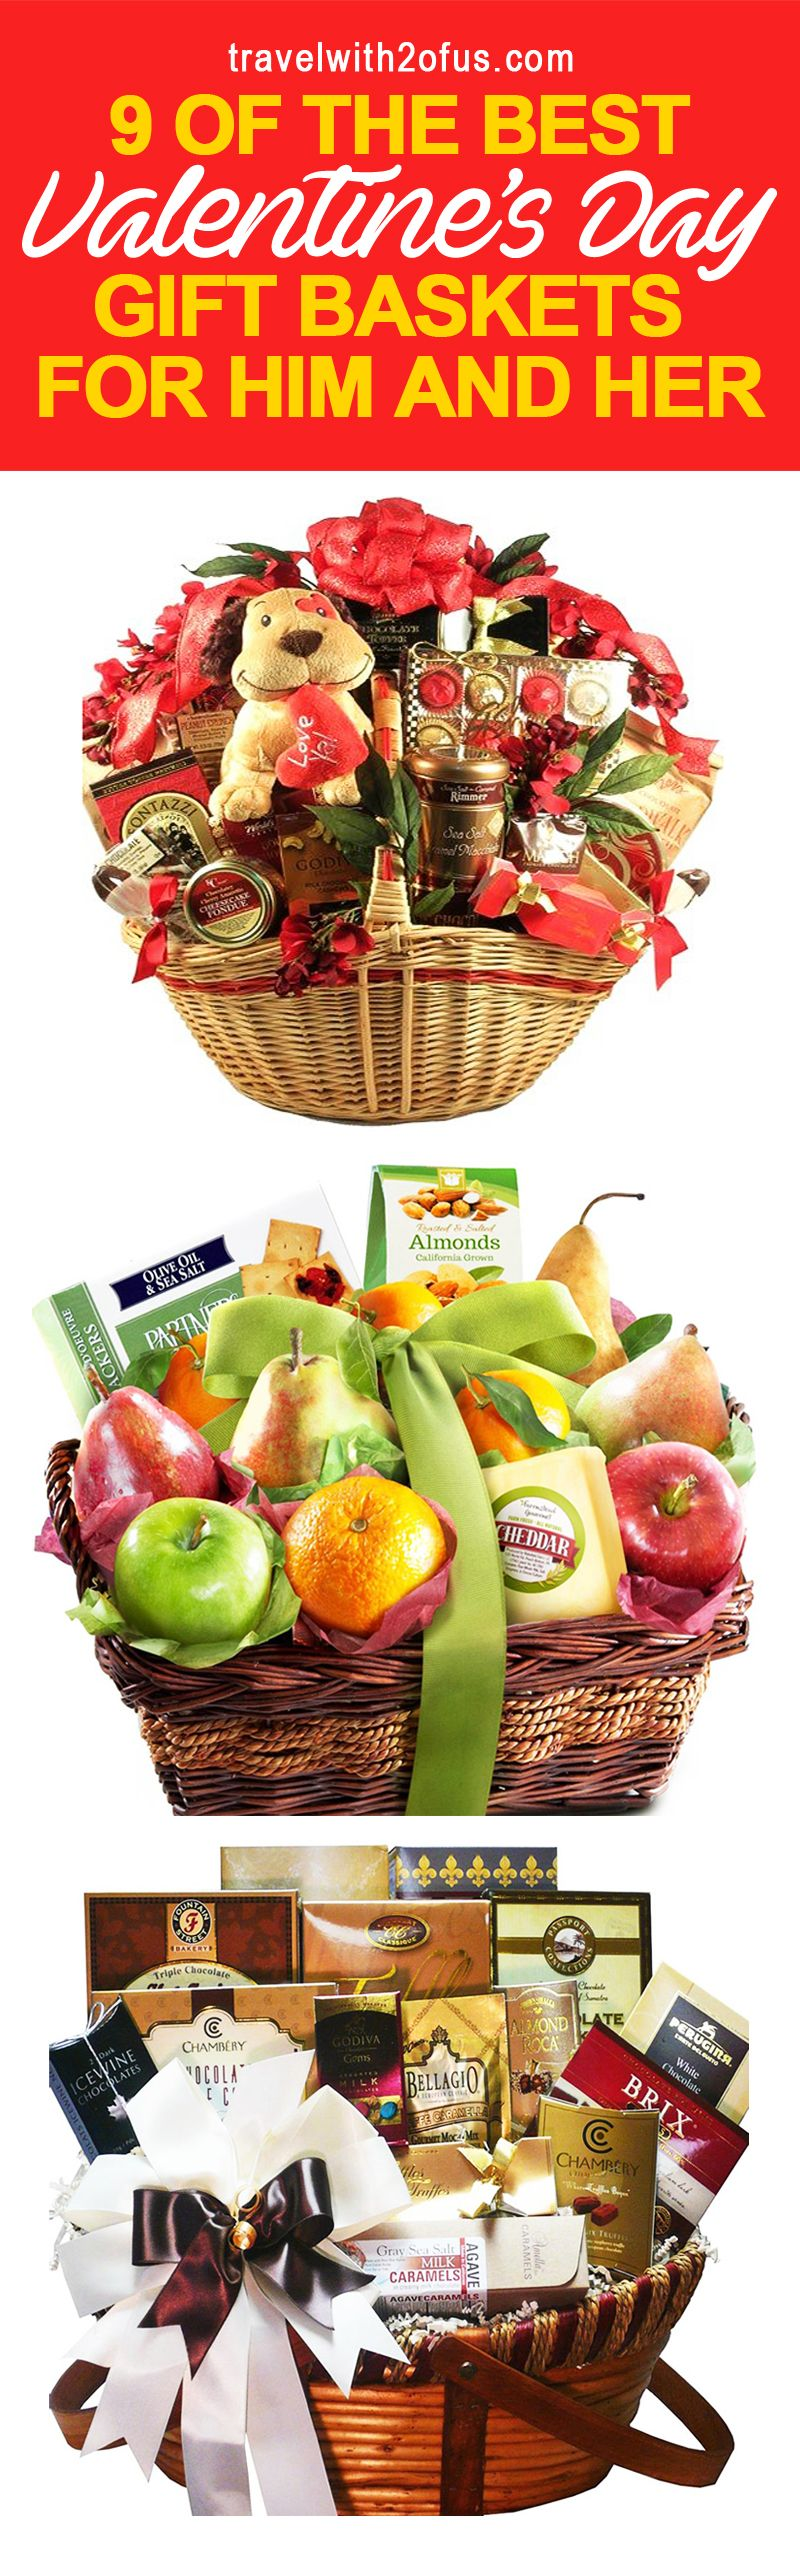 9 of the best valentines day gift baskets for him and her